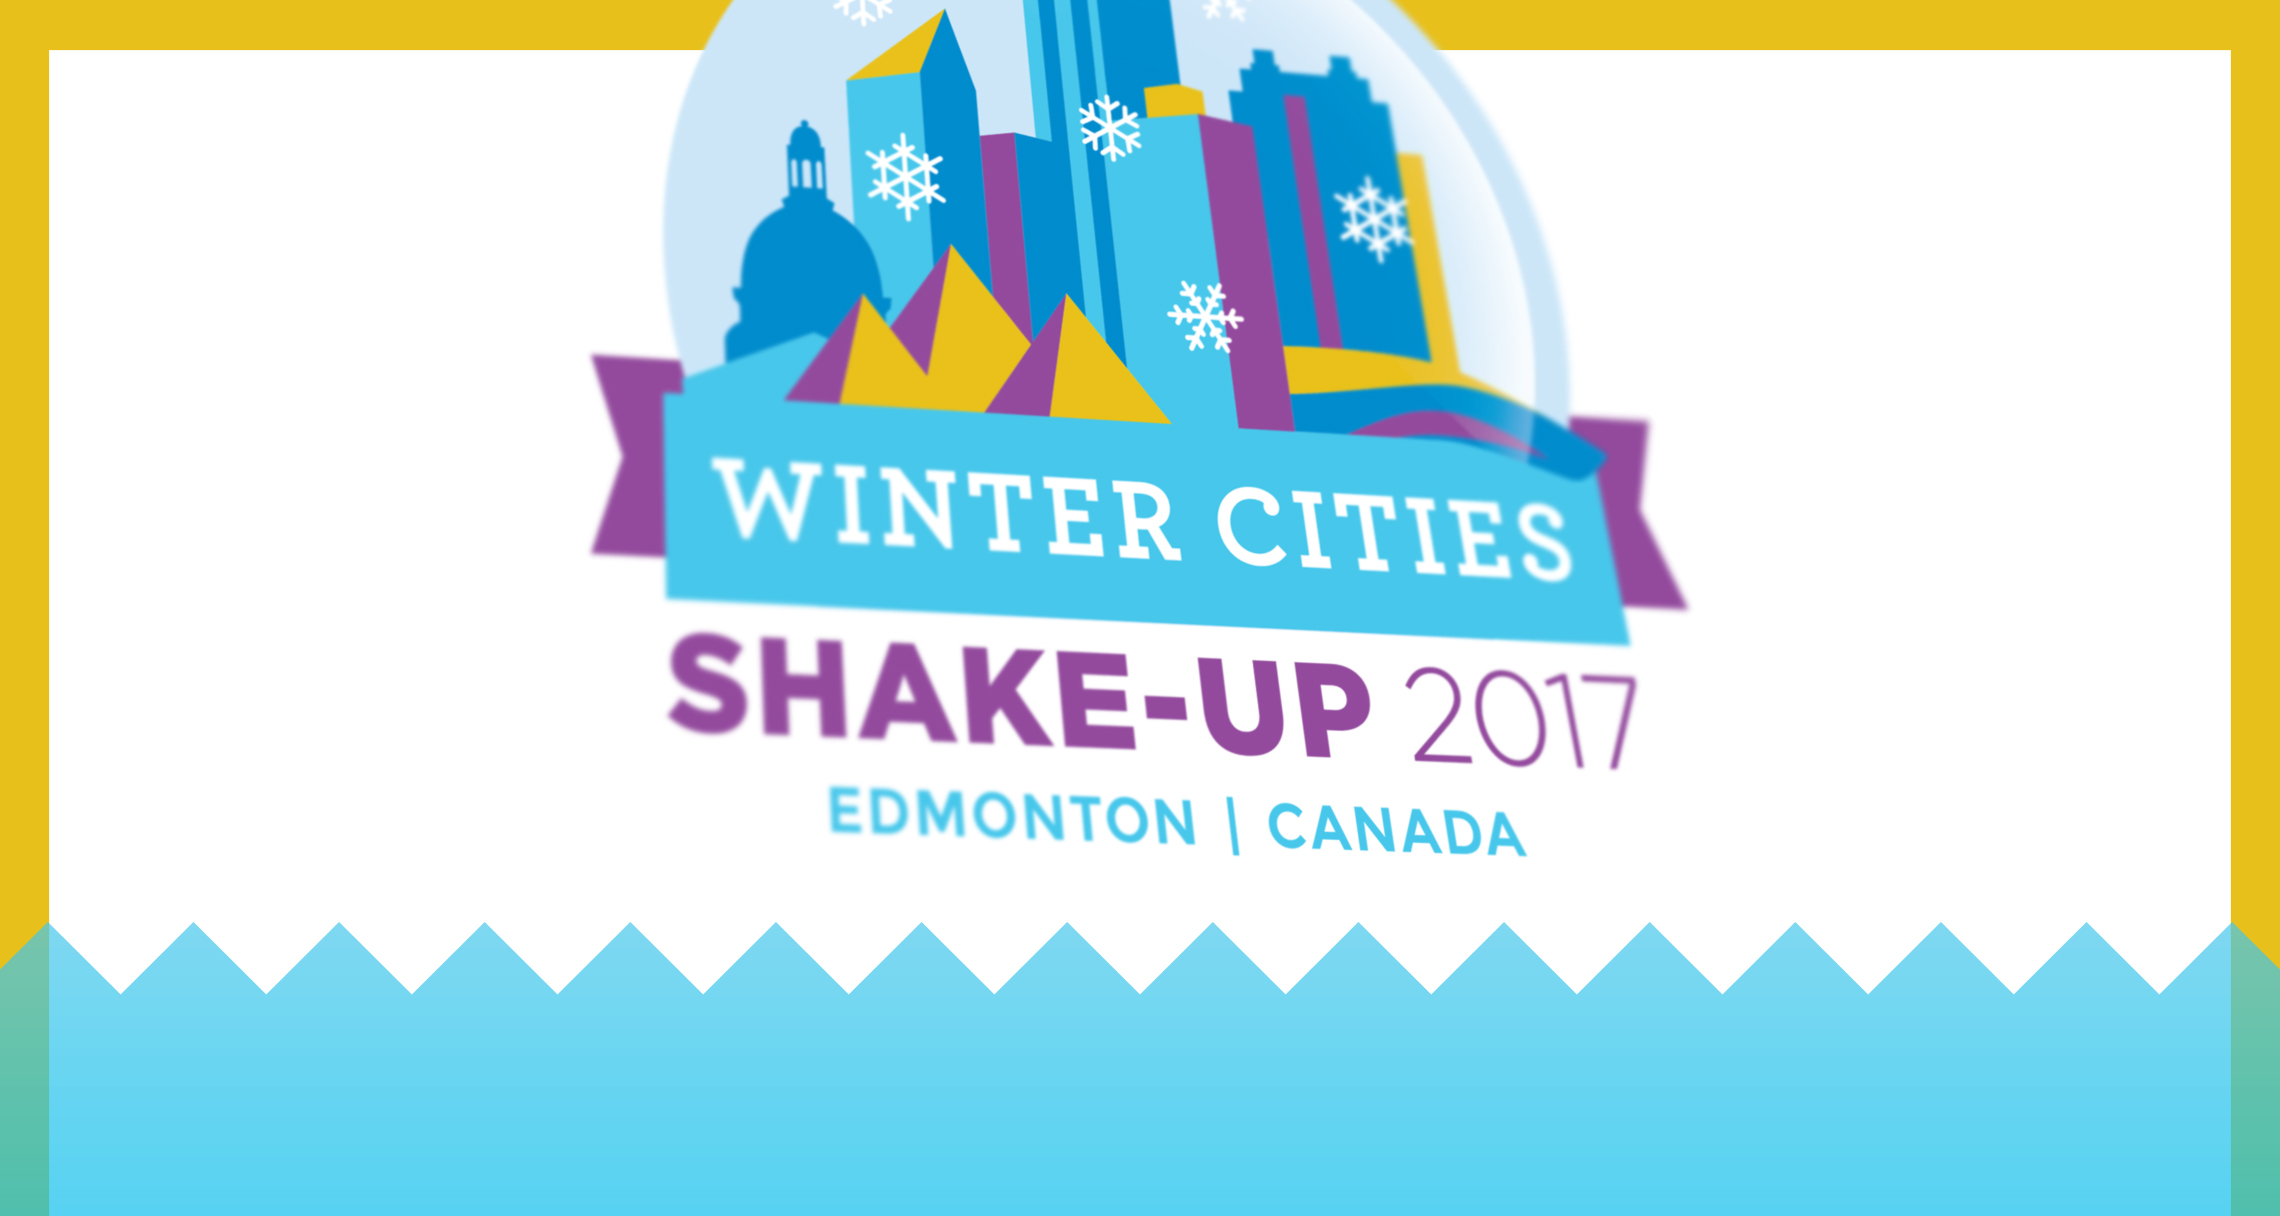 Winter Cities Shake-Up Conference logo